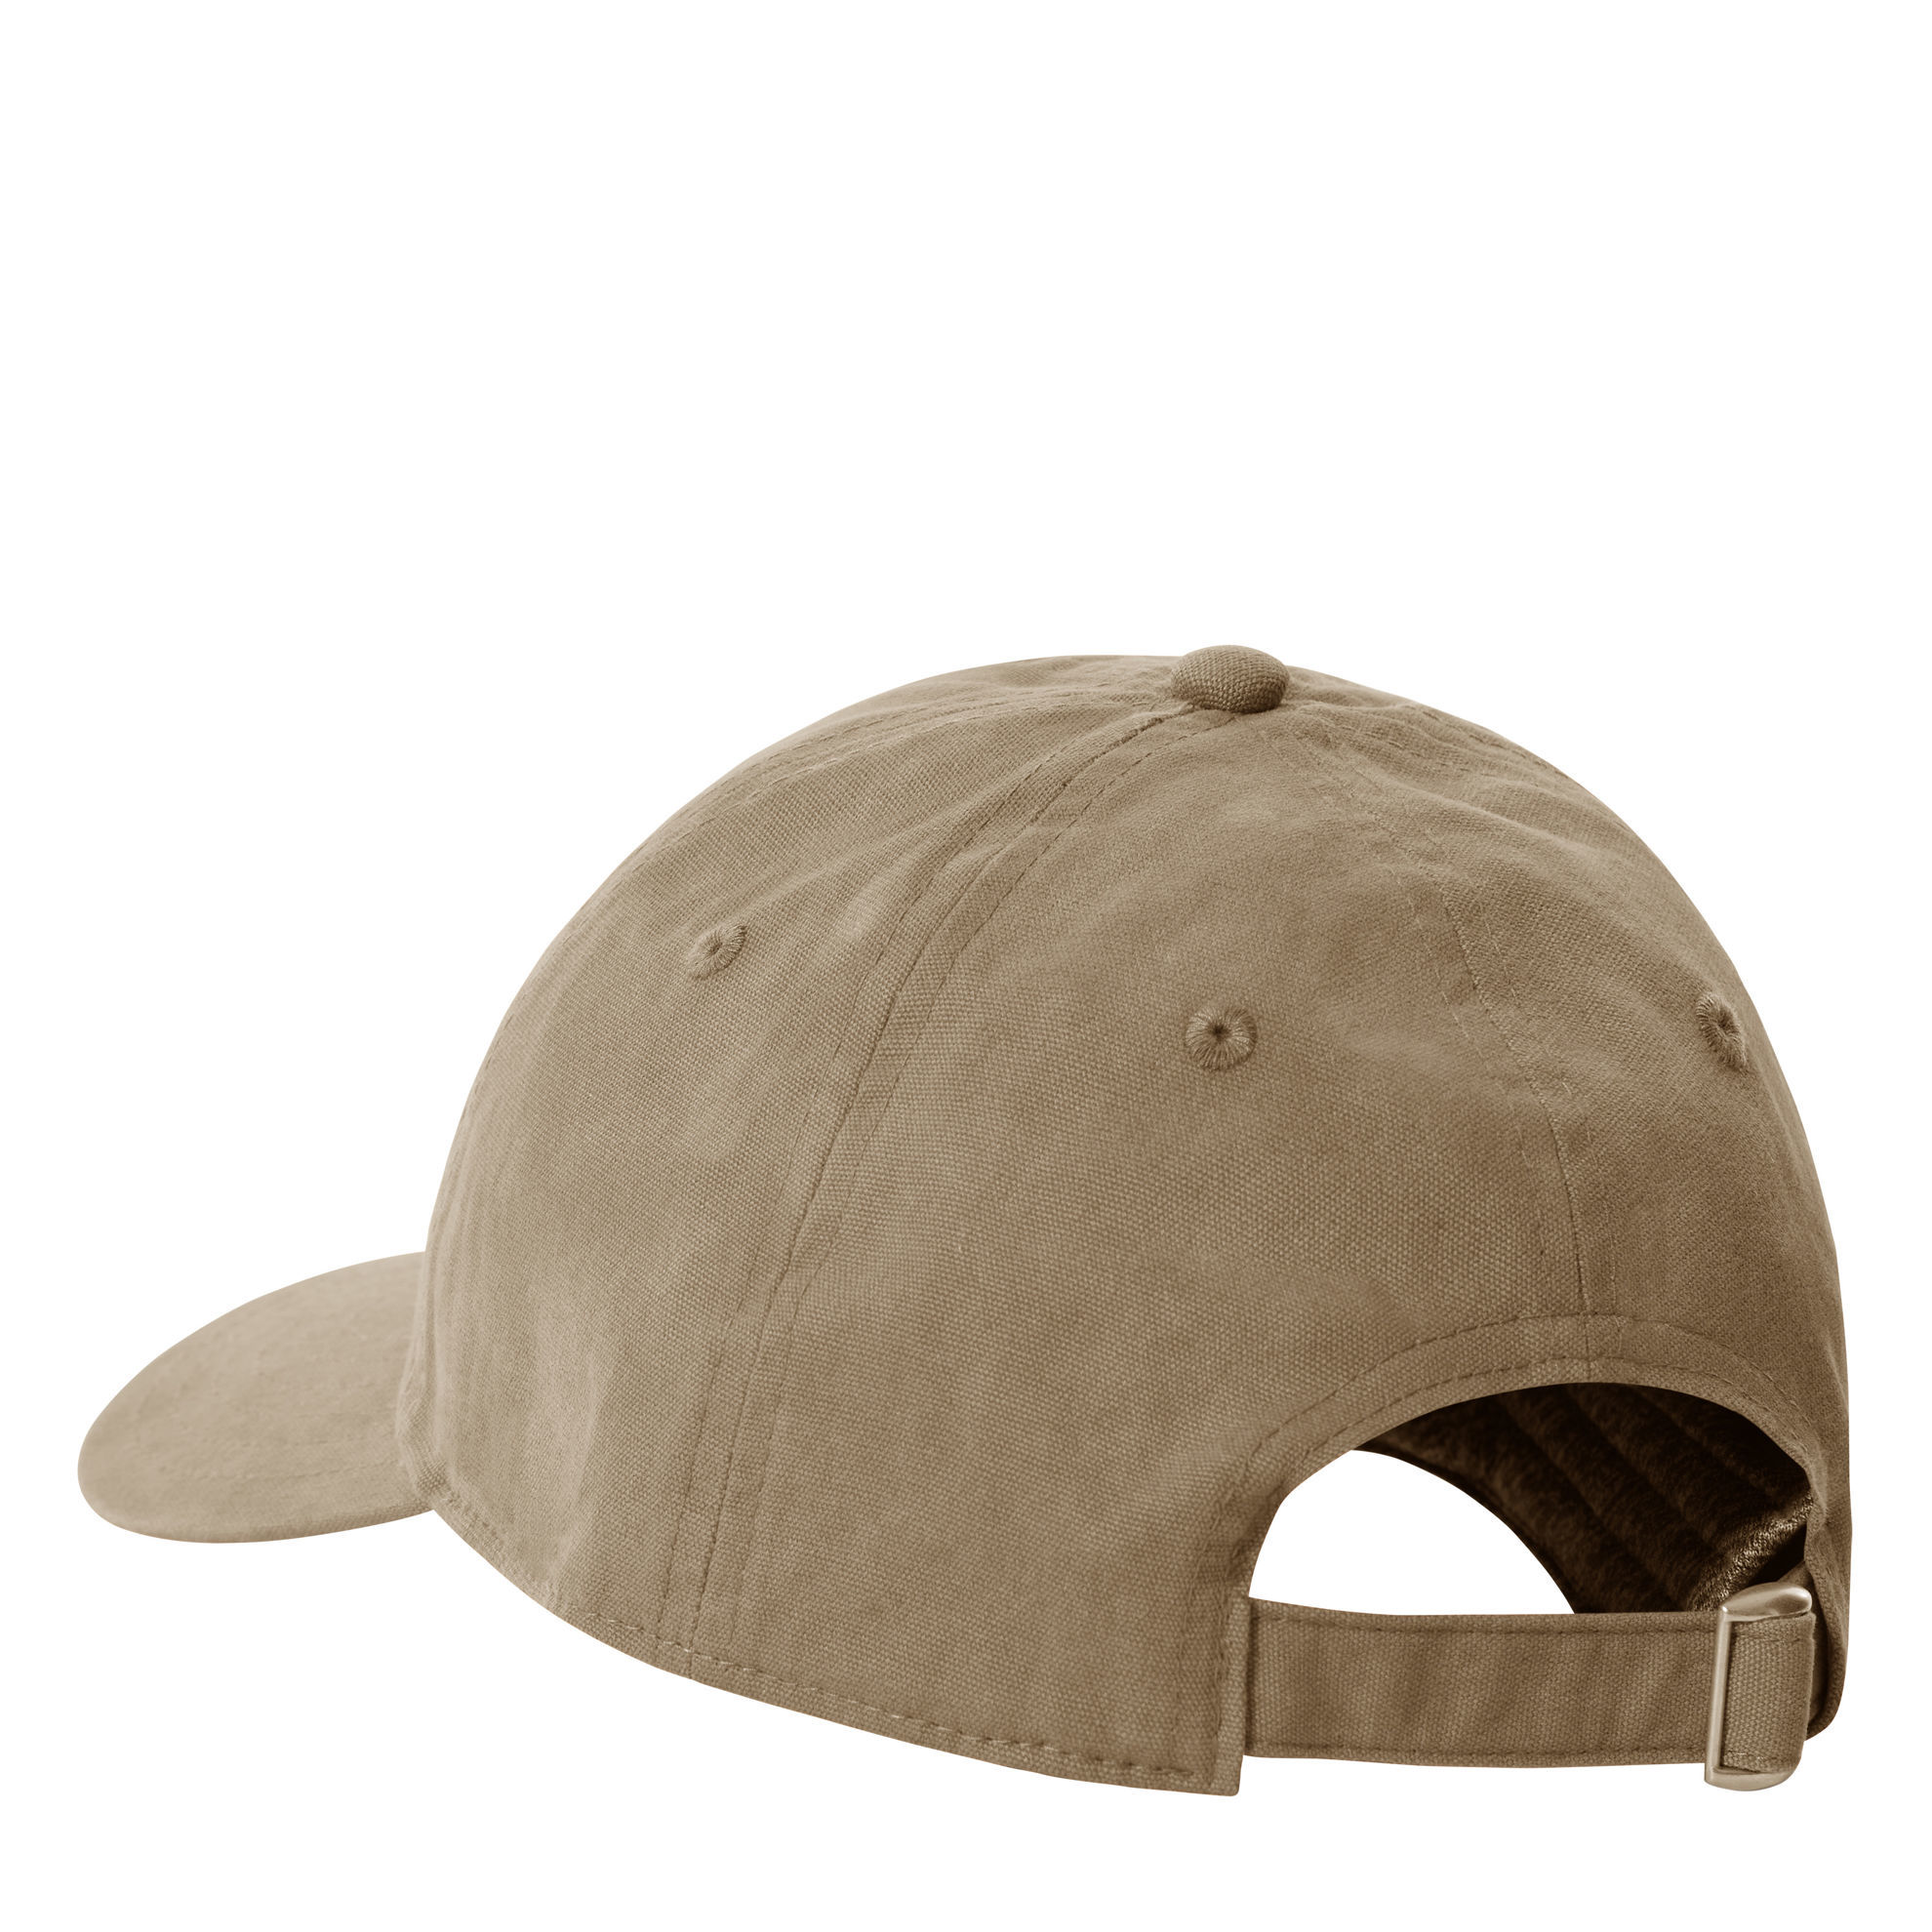 Bilde av The North Face Washed norm hat, Utility Brown